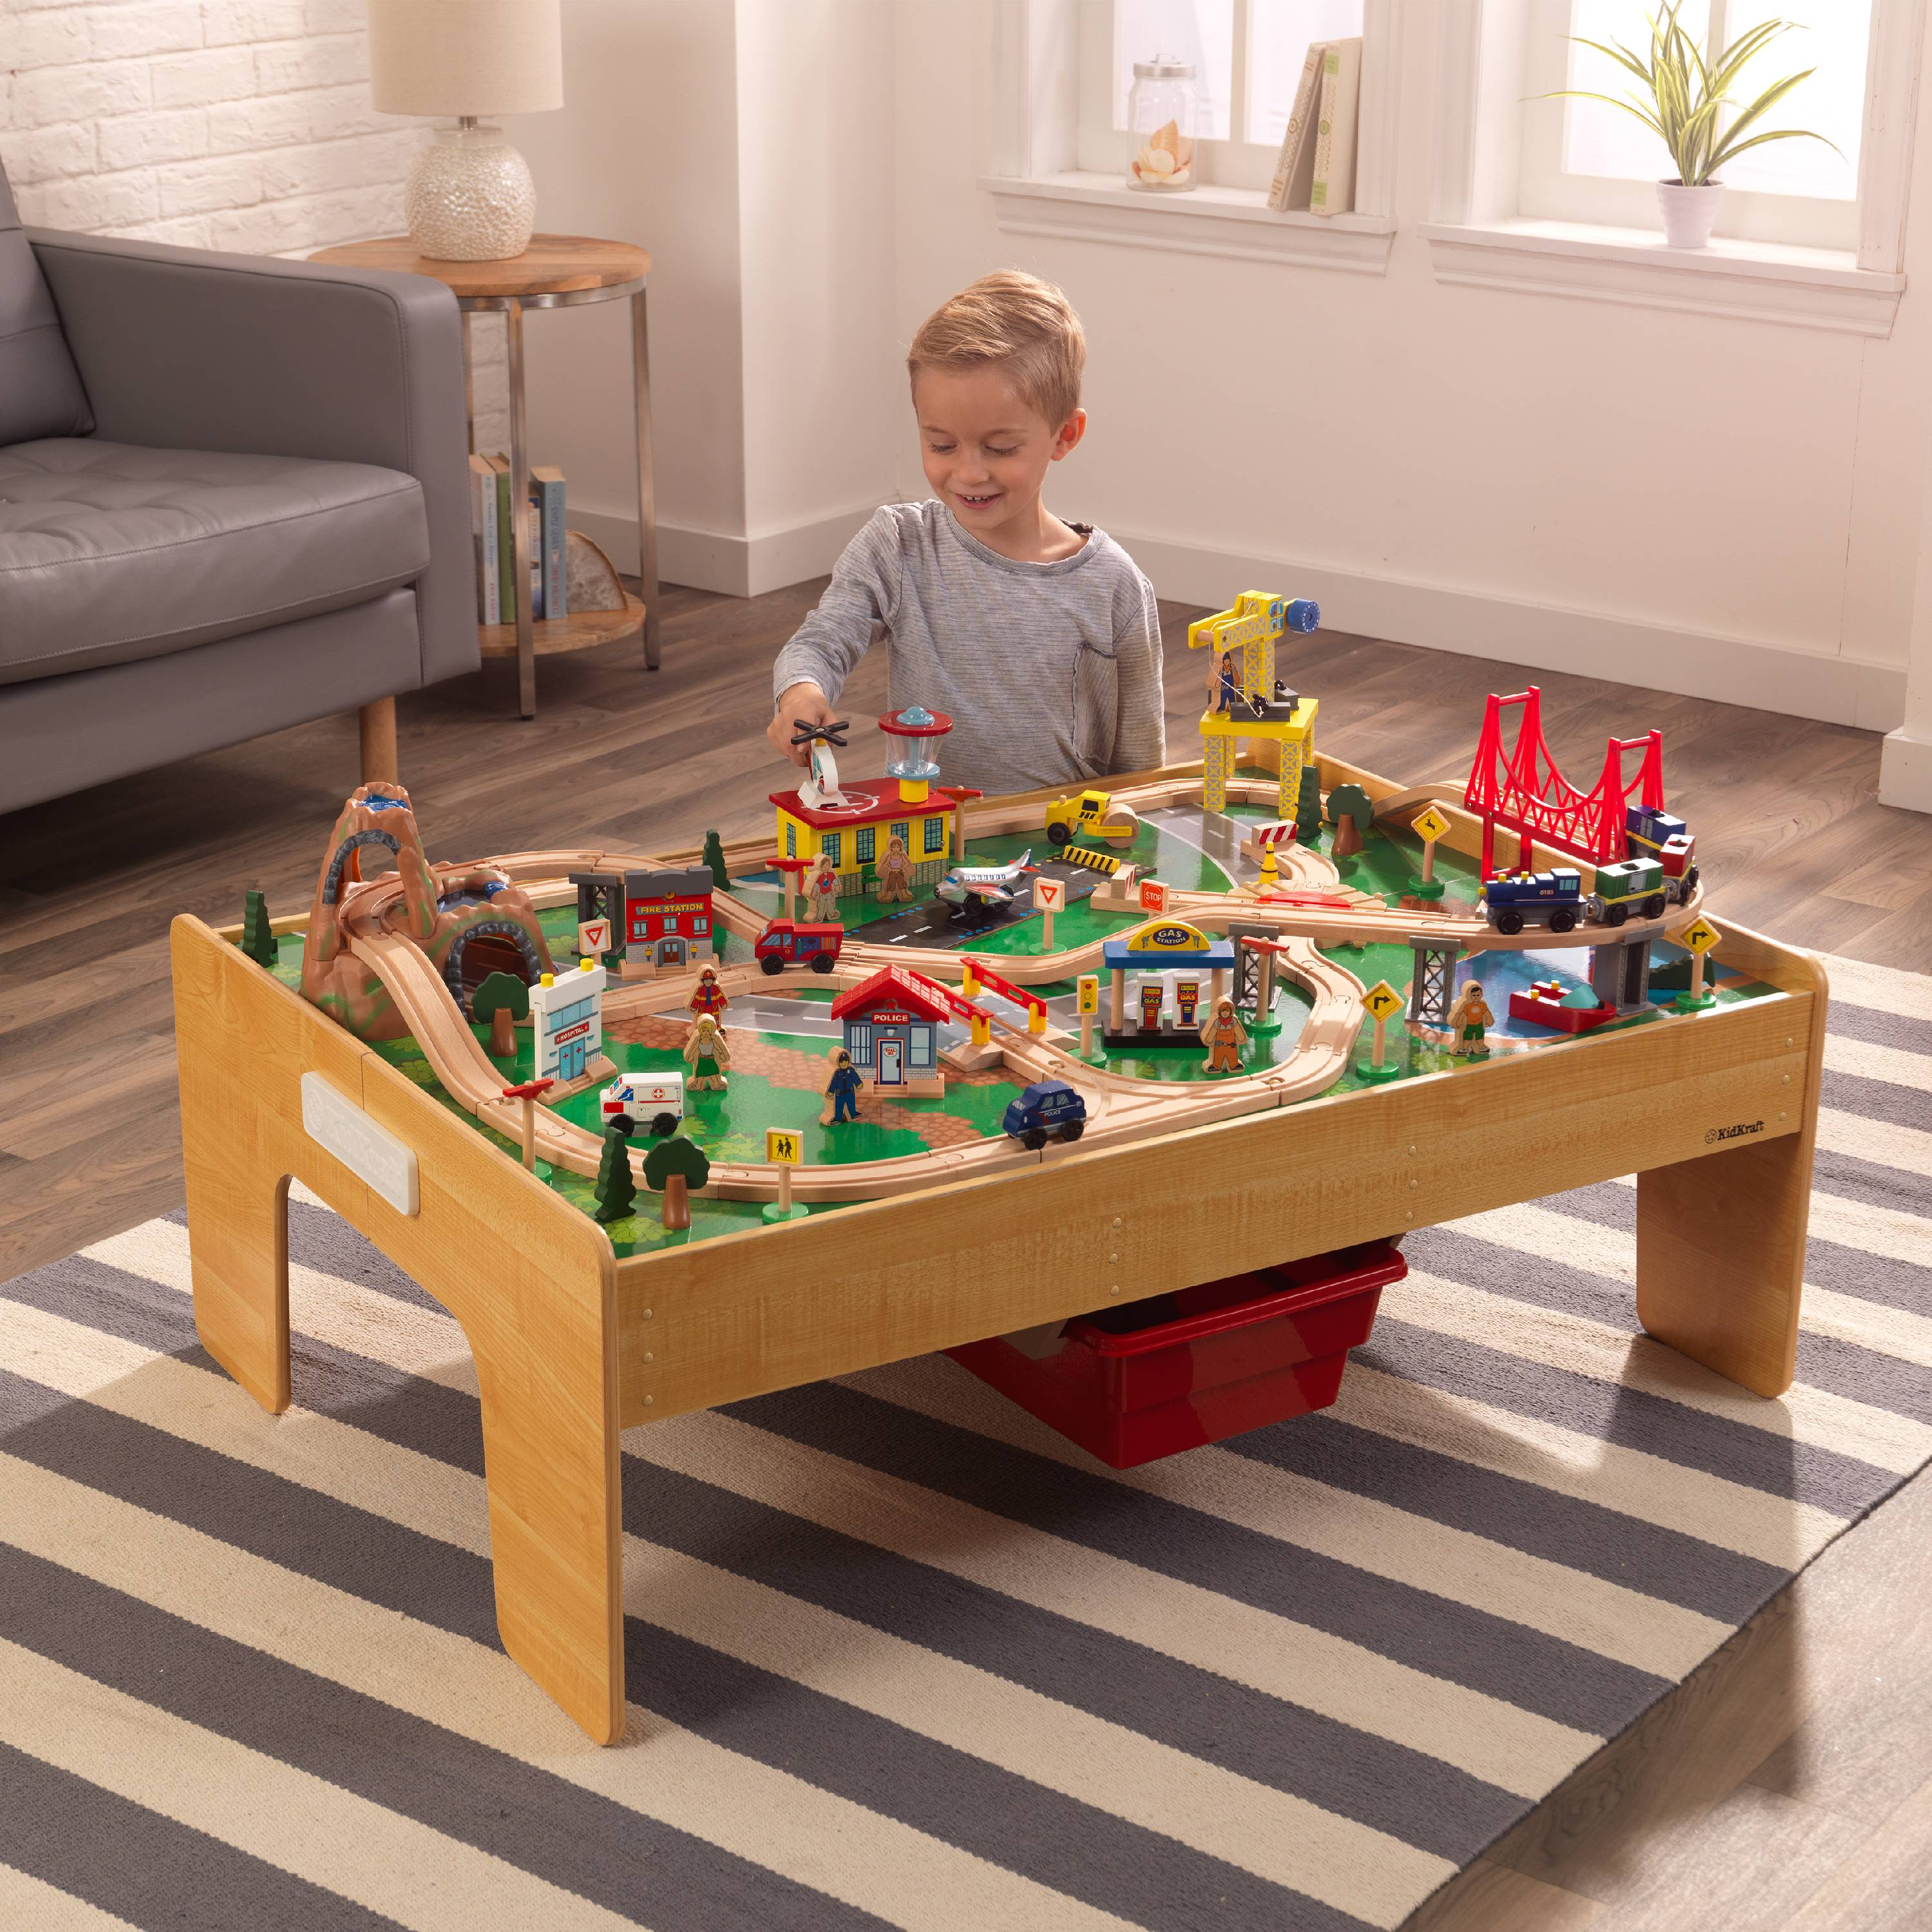 KidKraft Adventure Town Railway Train Set & Table with EZ Kraft Assembly and 120 accessories by KidKraft